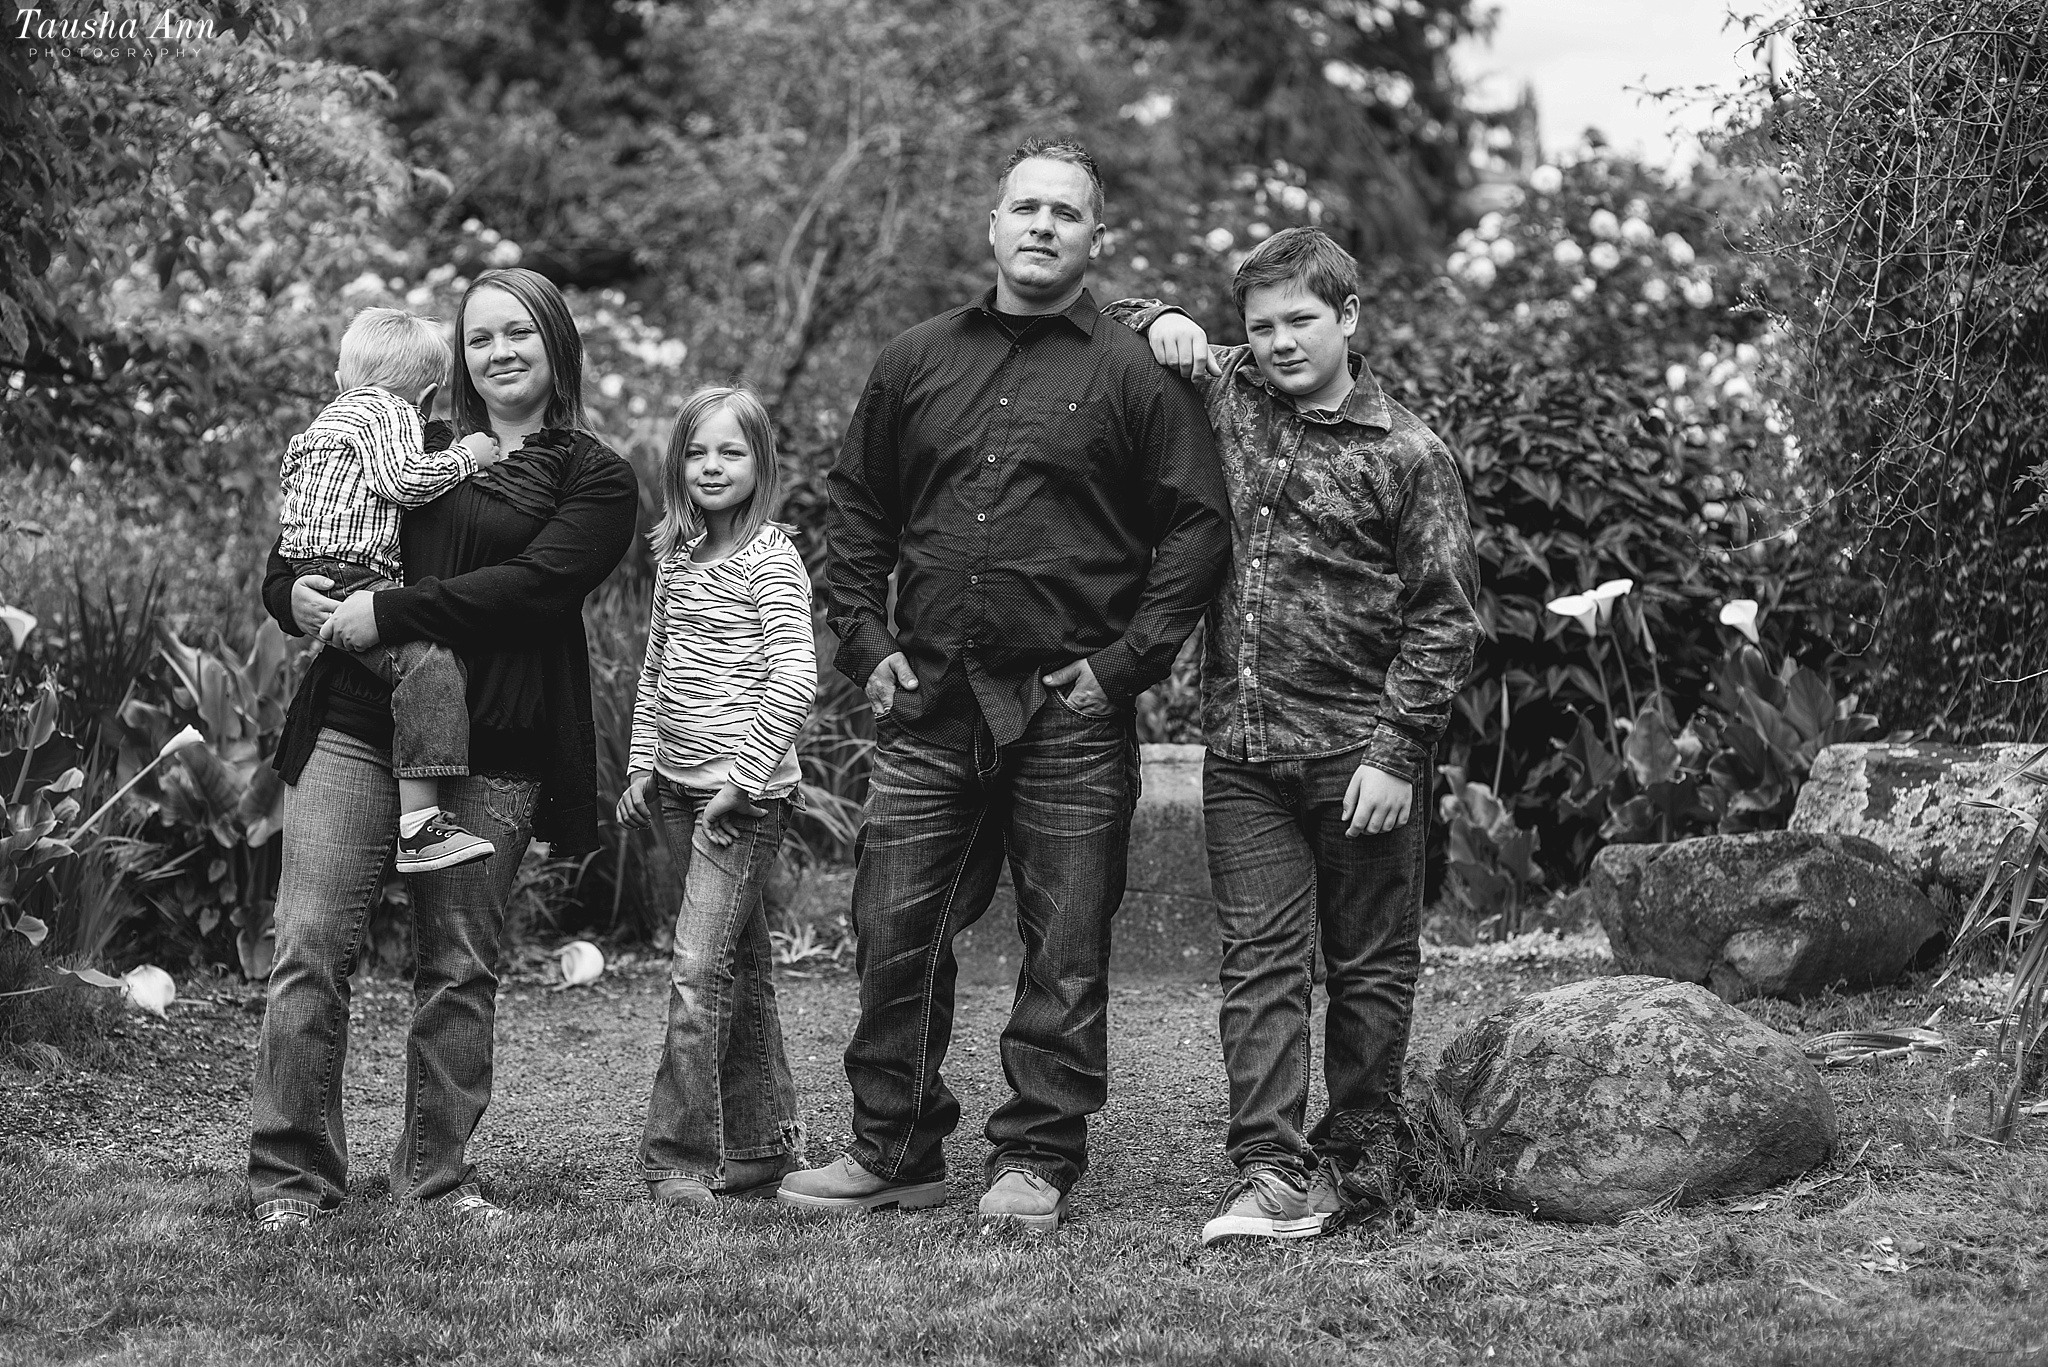 Nashville_Family_Photographer_Tausha_Ann_Photography_Eugene_Oregon_0025